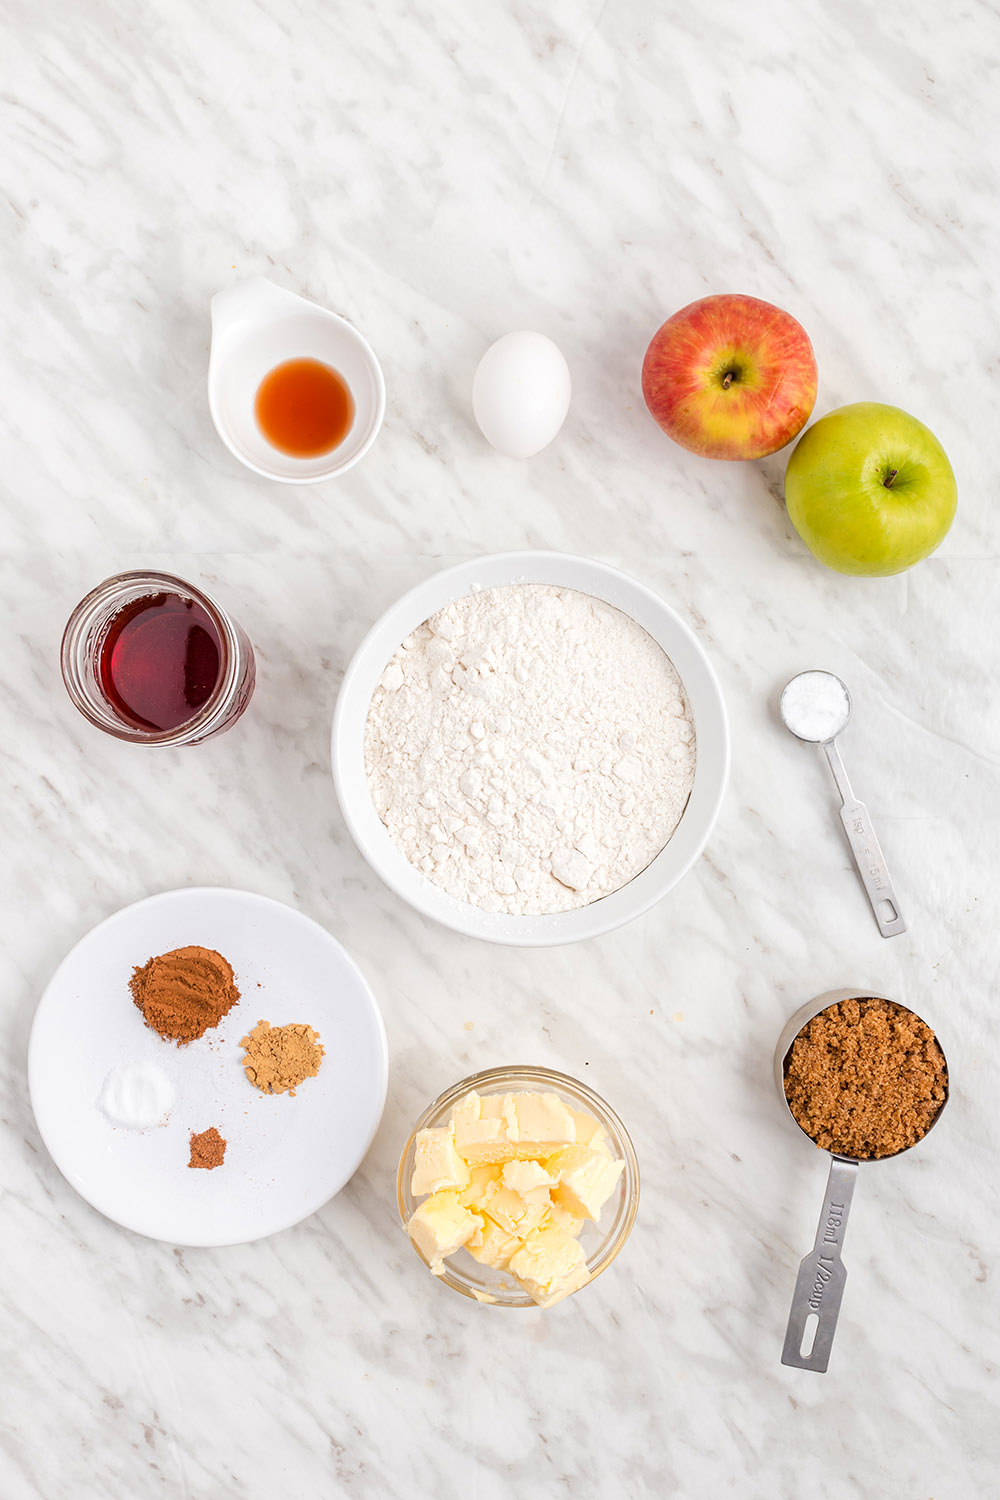 Apples, flour, cinnamon, and other ingredients on a table.